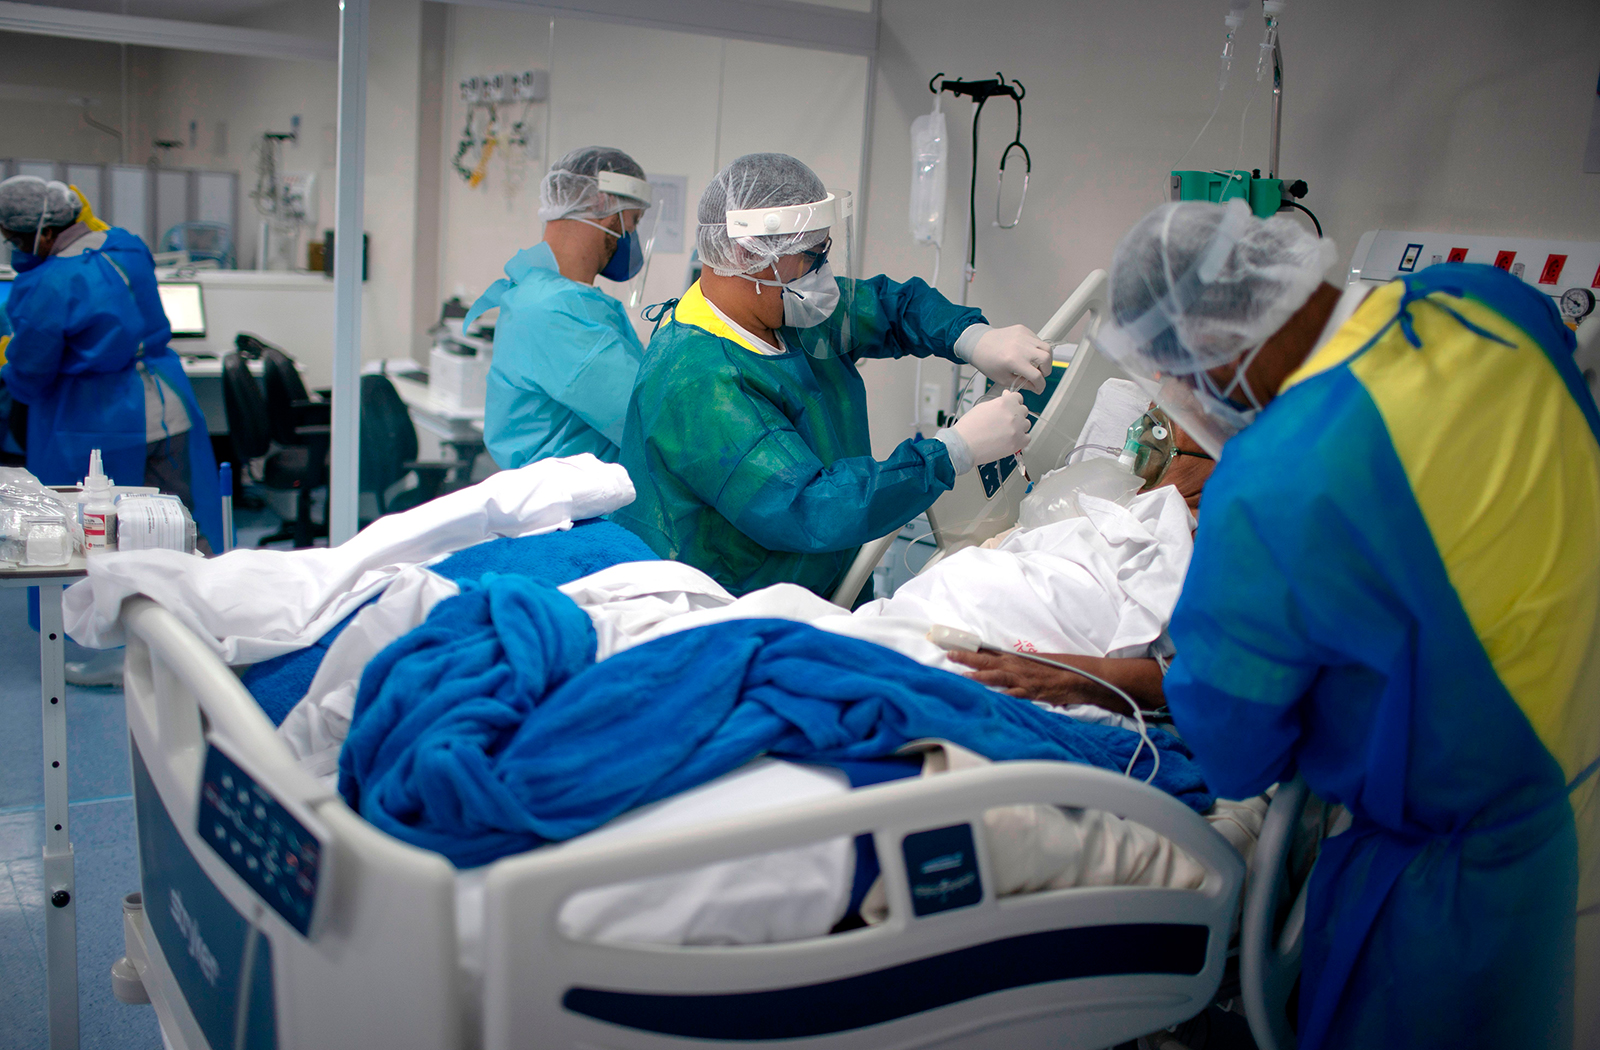 Health professionals check a patient infected with Covid-19 at the Intensive Care Unit (ICU) of the Doctor Ernesto Che Guevara Public Hospital in Marica, Rio de Janeiro, on June 6.